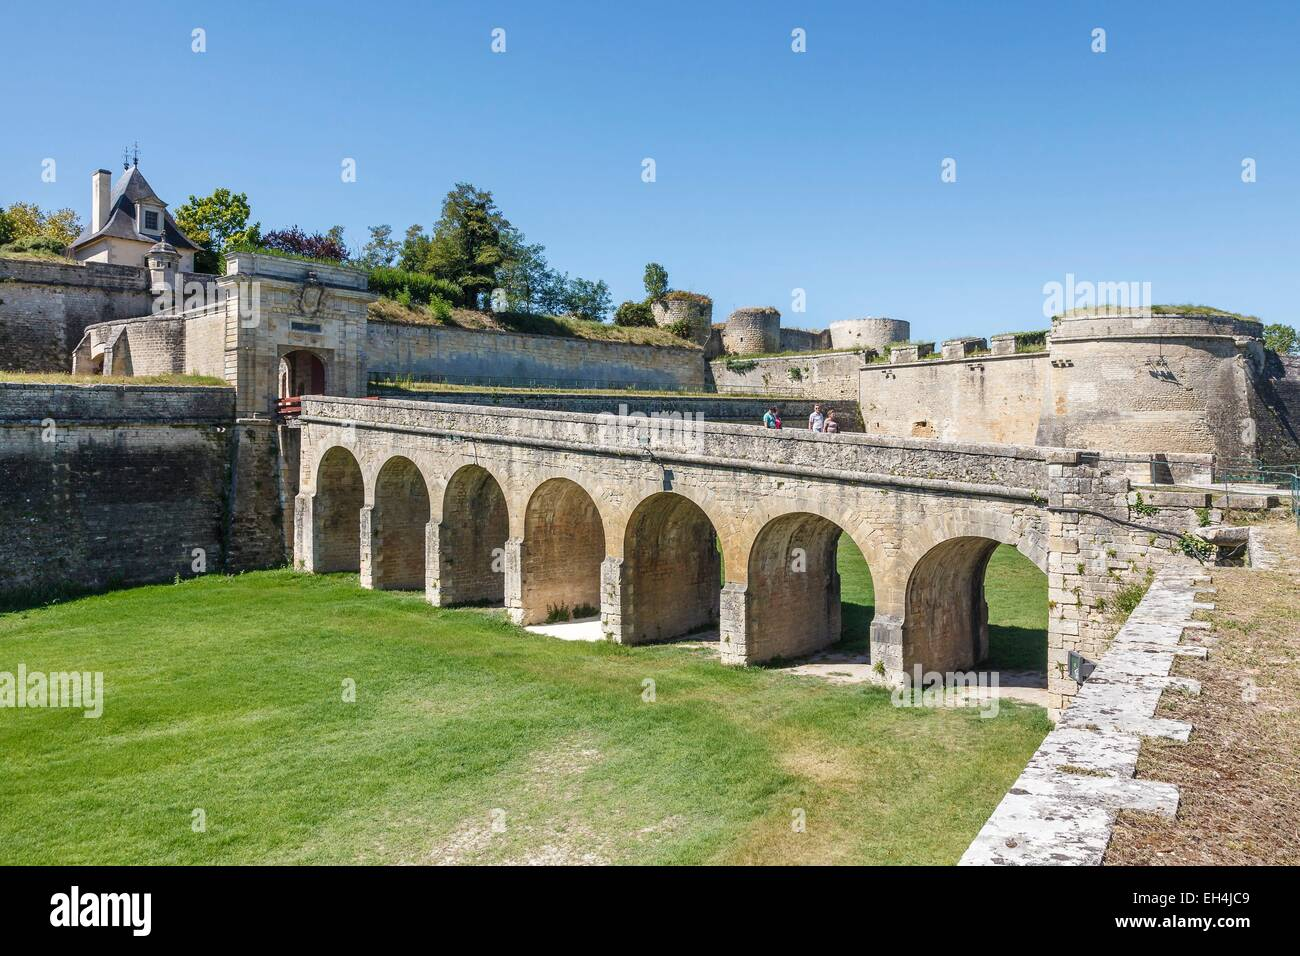 France, Gironde, Blaye, the Citadel, la Porte Royale, Fortifications of Vauban, listed as World Heritage by UNESCO - Stock Image